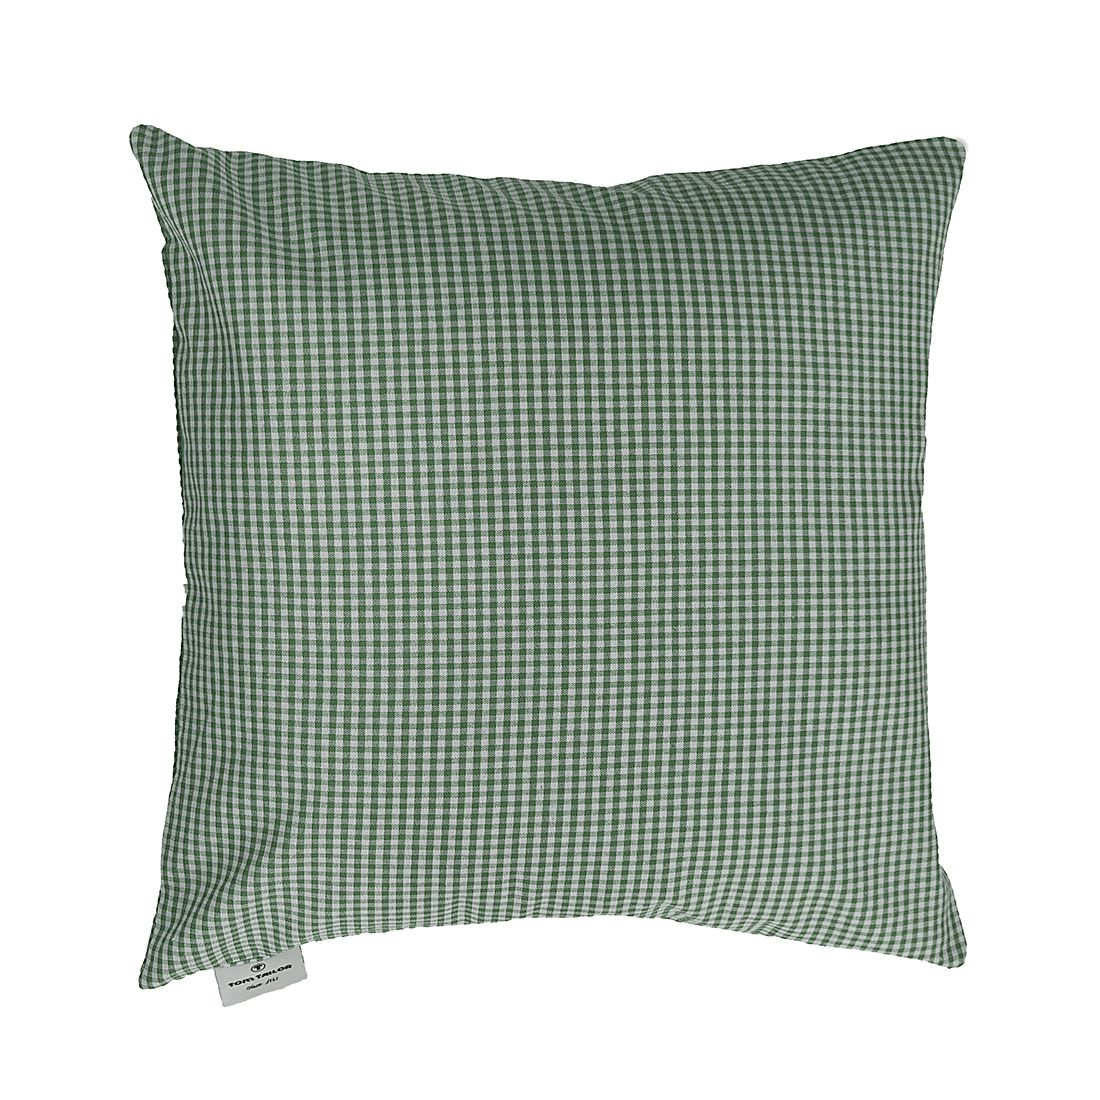 Image of Federa per cuscino T-Petty (40x40 cm) - Verde, Tom Tailor